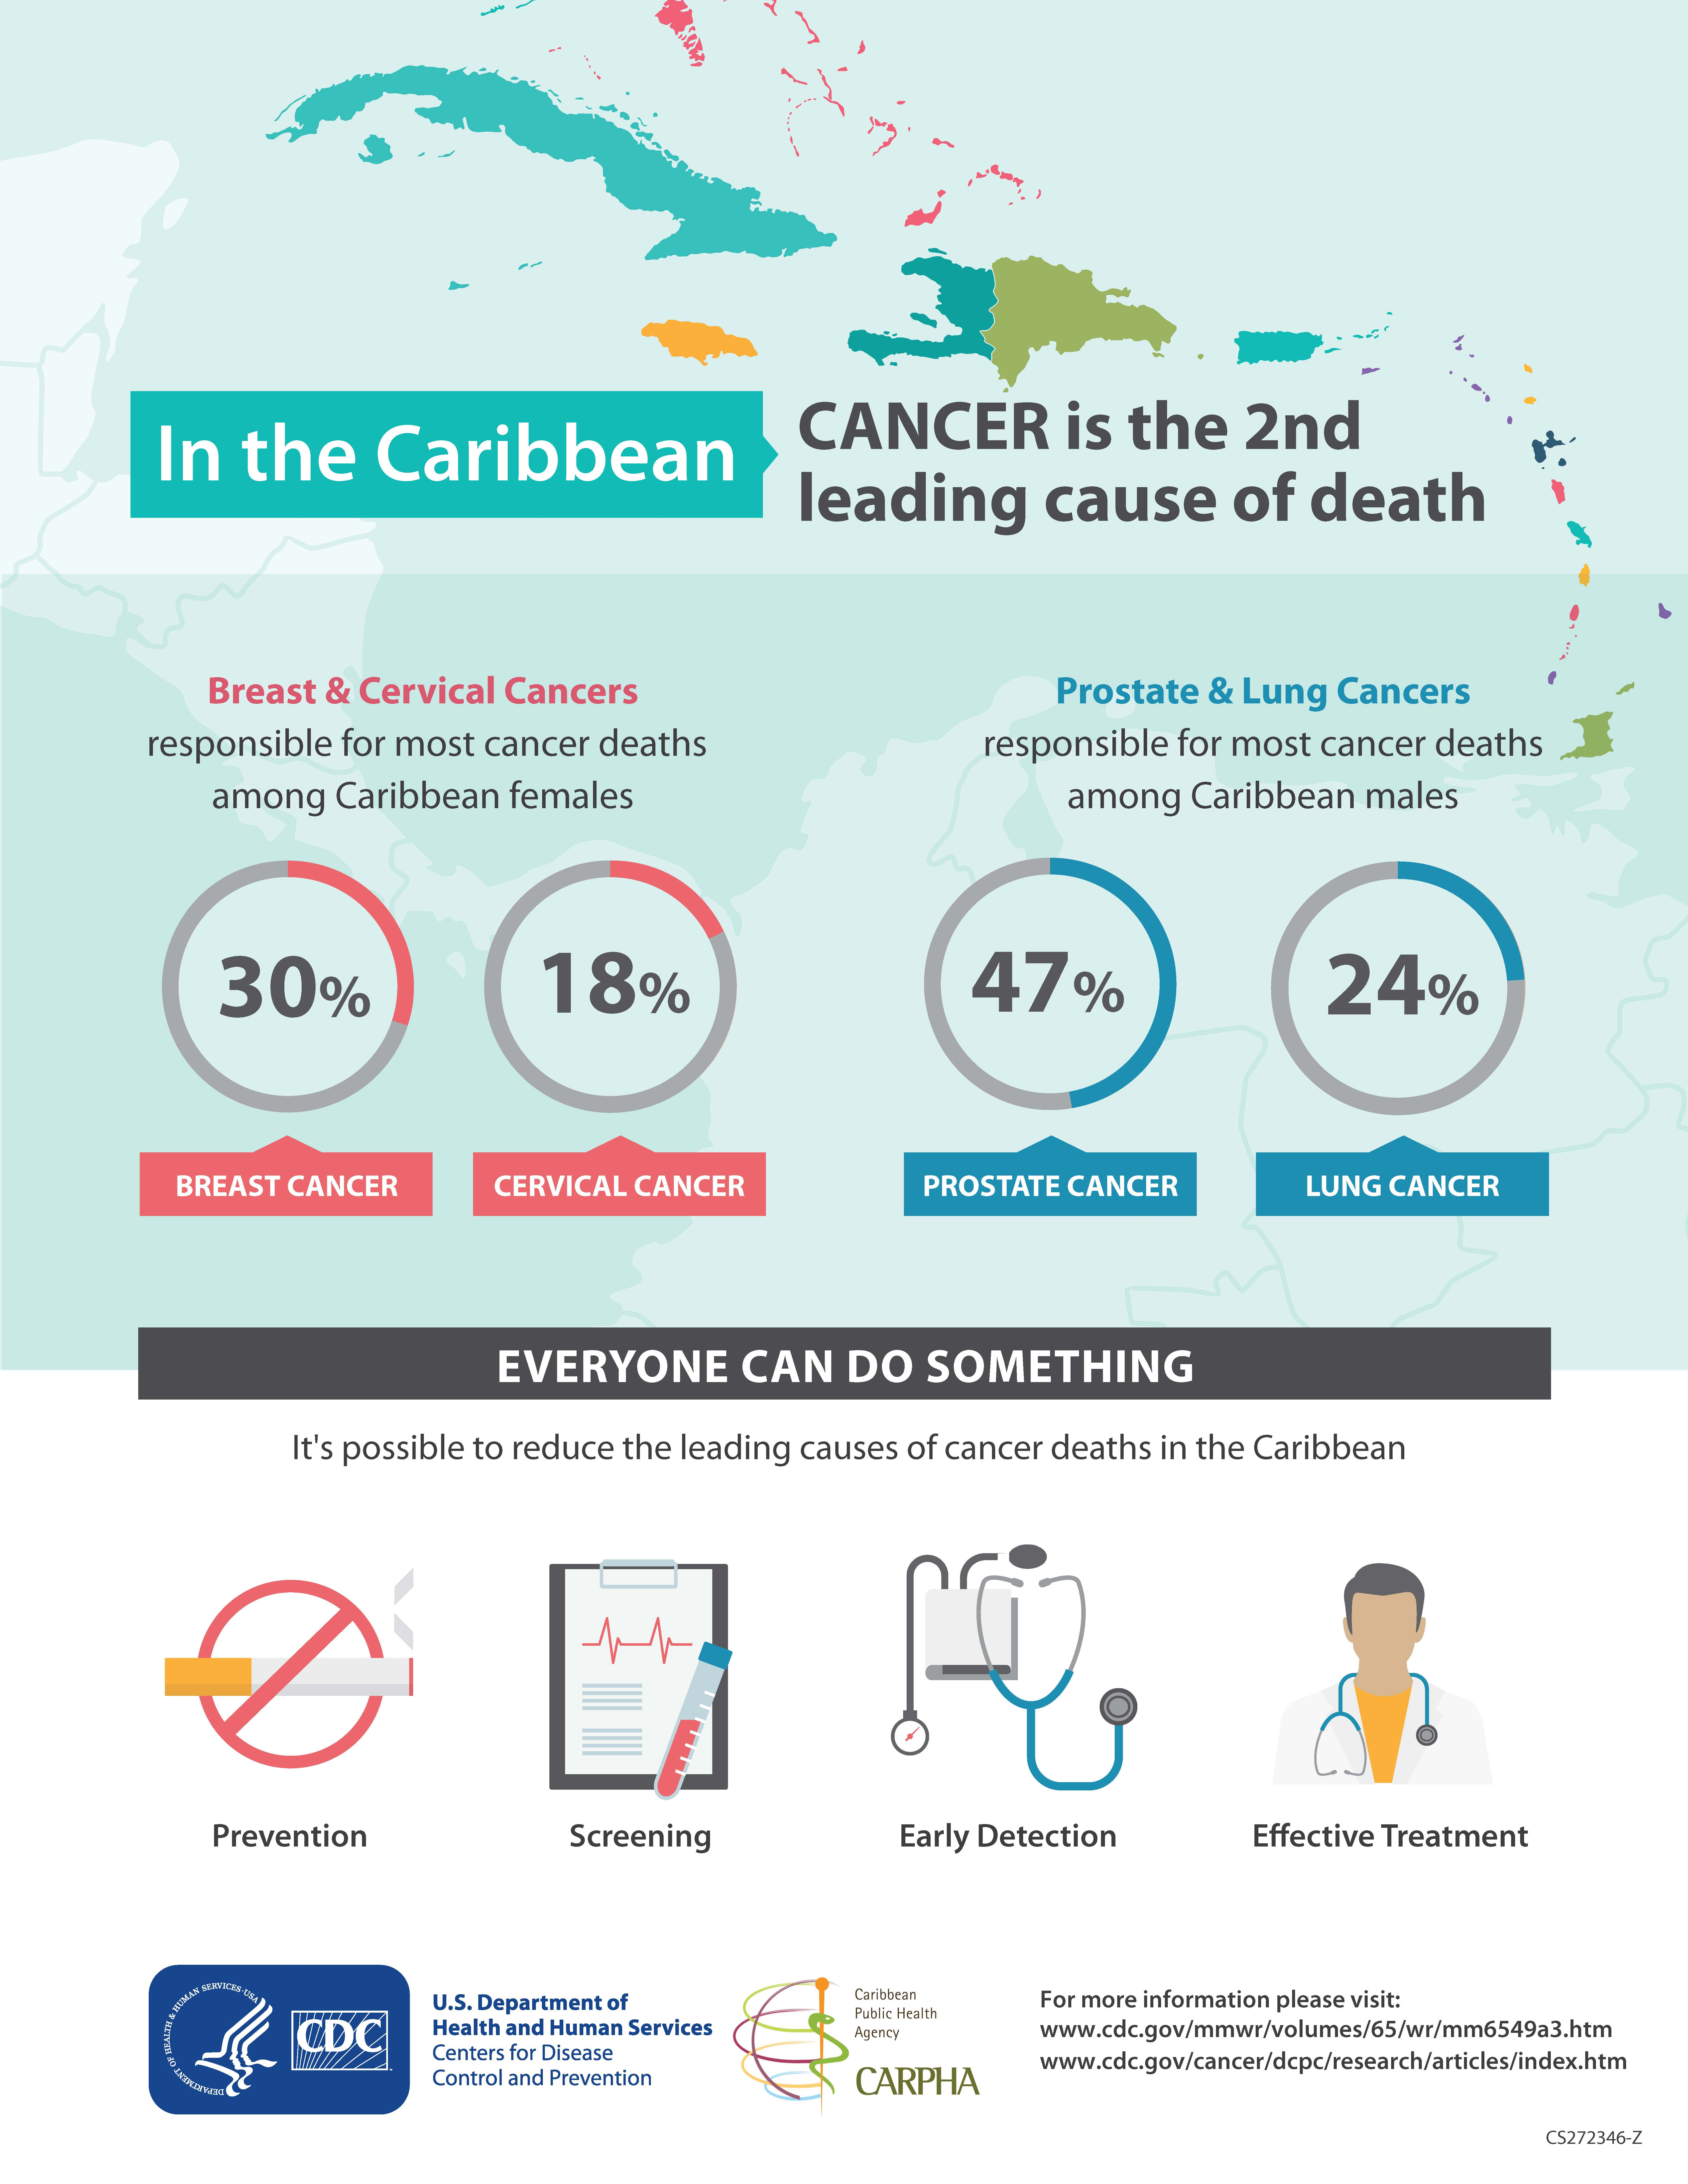 Breast Cancer is Two Times Higher in the Caribbean Compared to the USA